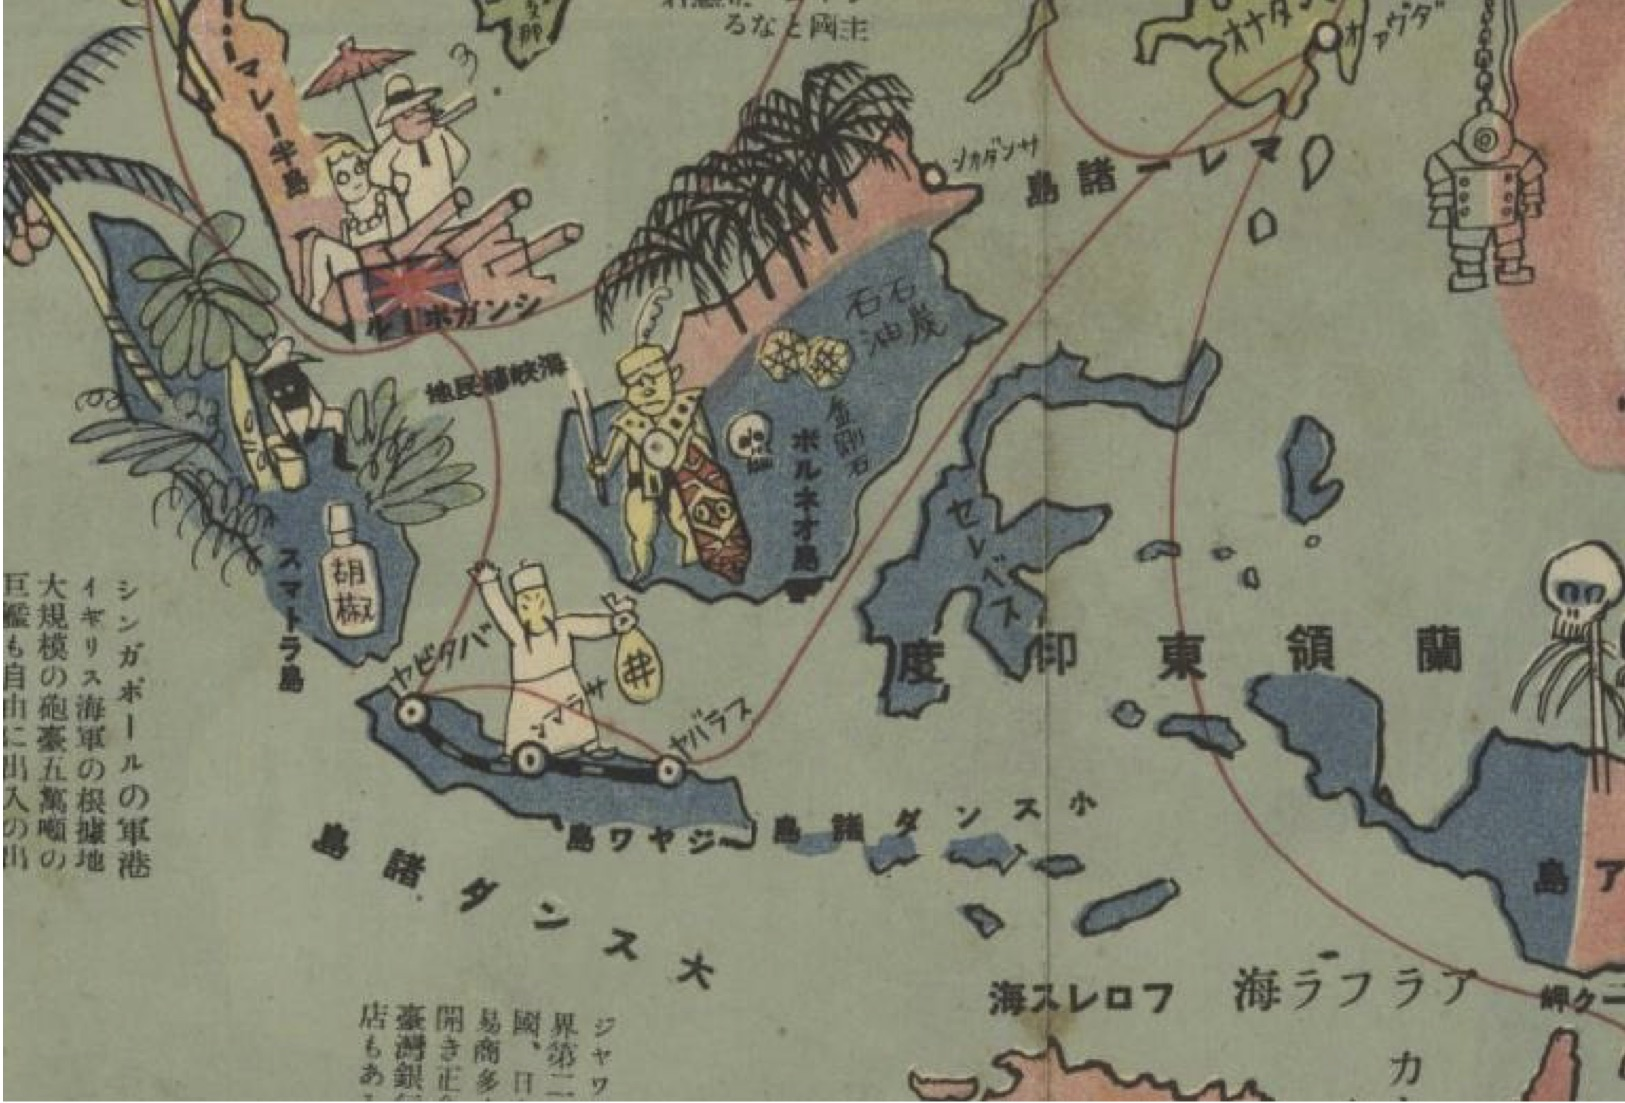 A 1932 Japanese map of the Dutch East Indies